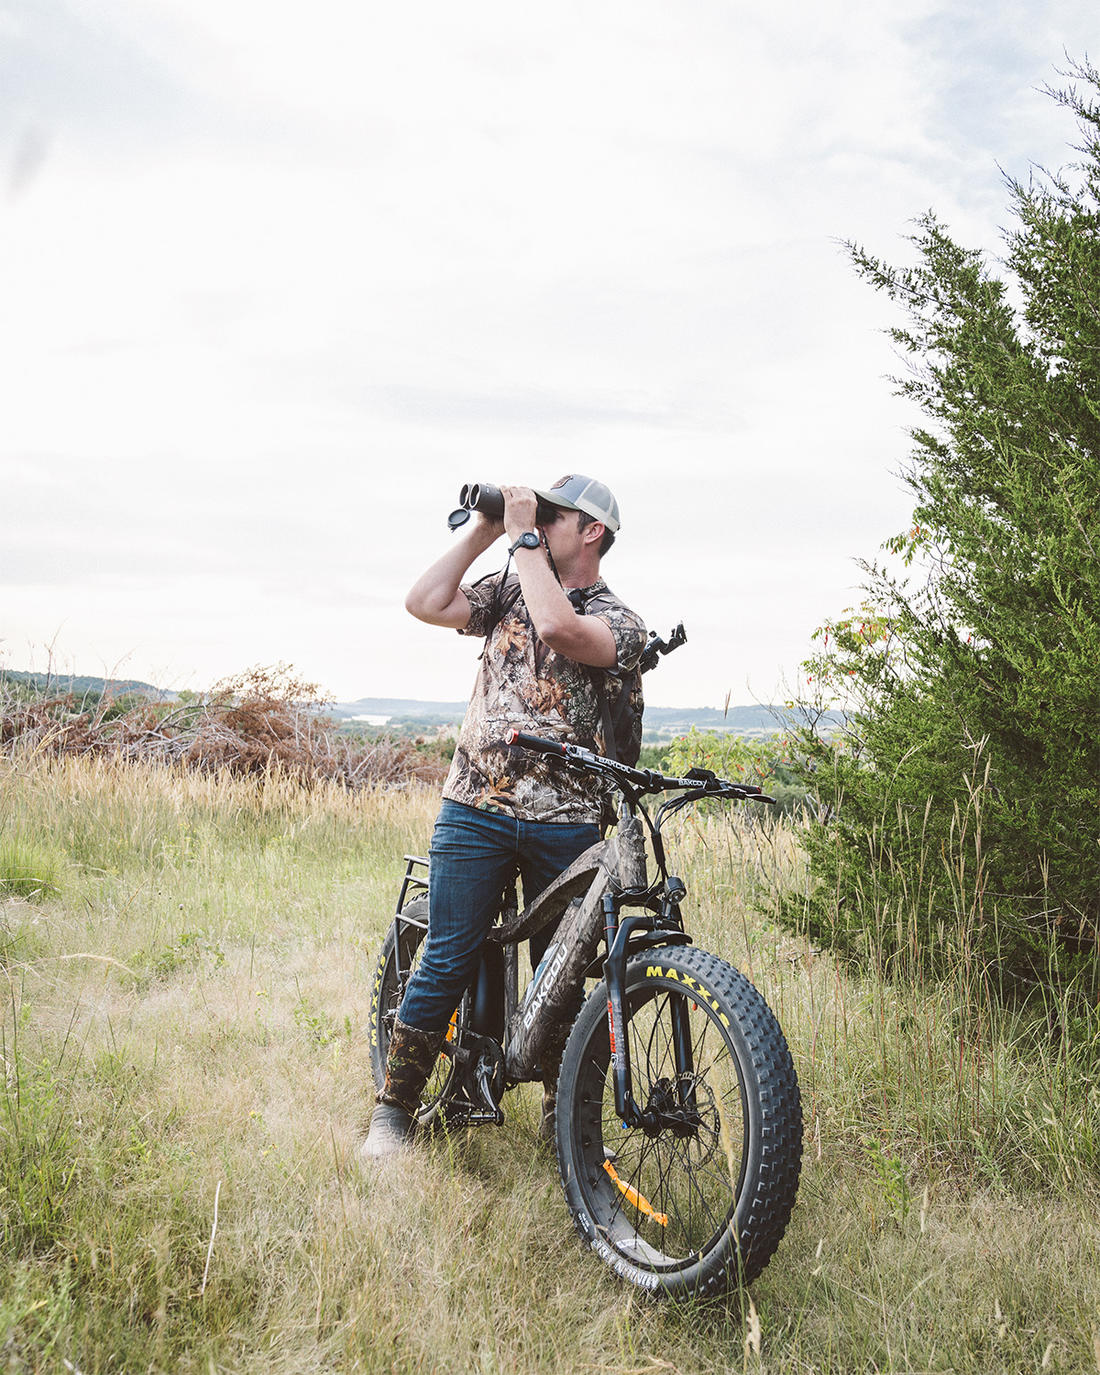 Realtree's Tyler Jordan field-tests one of Bakcou's nifty e-bikes. A headlight and mud fenders trick them out, and you can bungee cord a wild turkey to the rear pannier rack. Image by Realtree 365